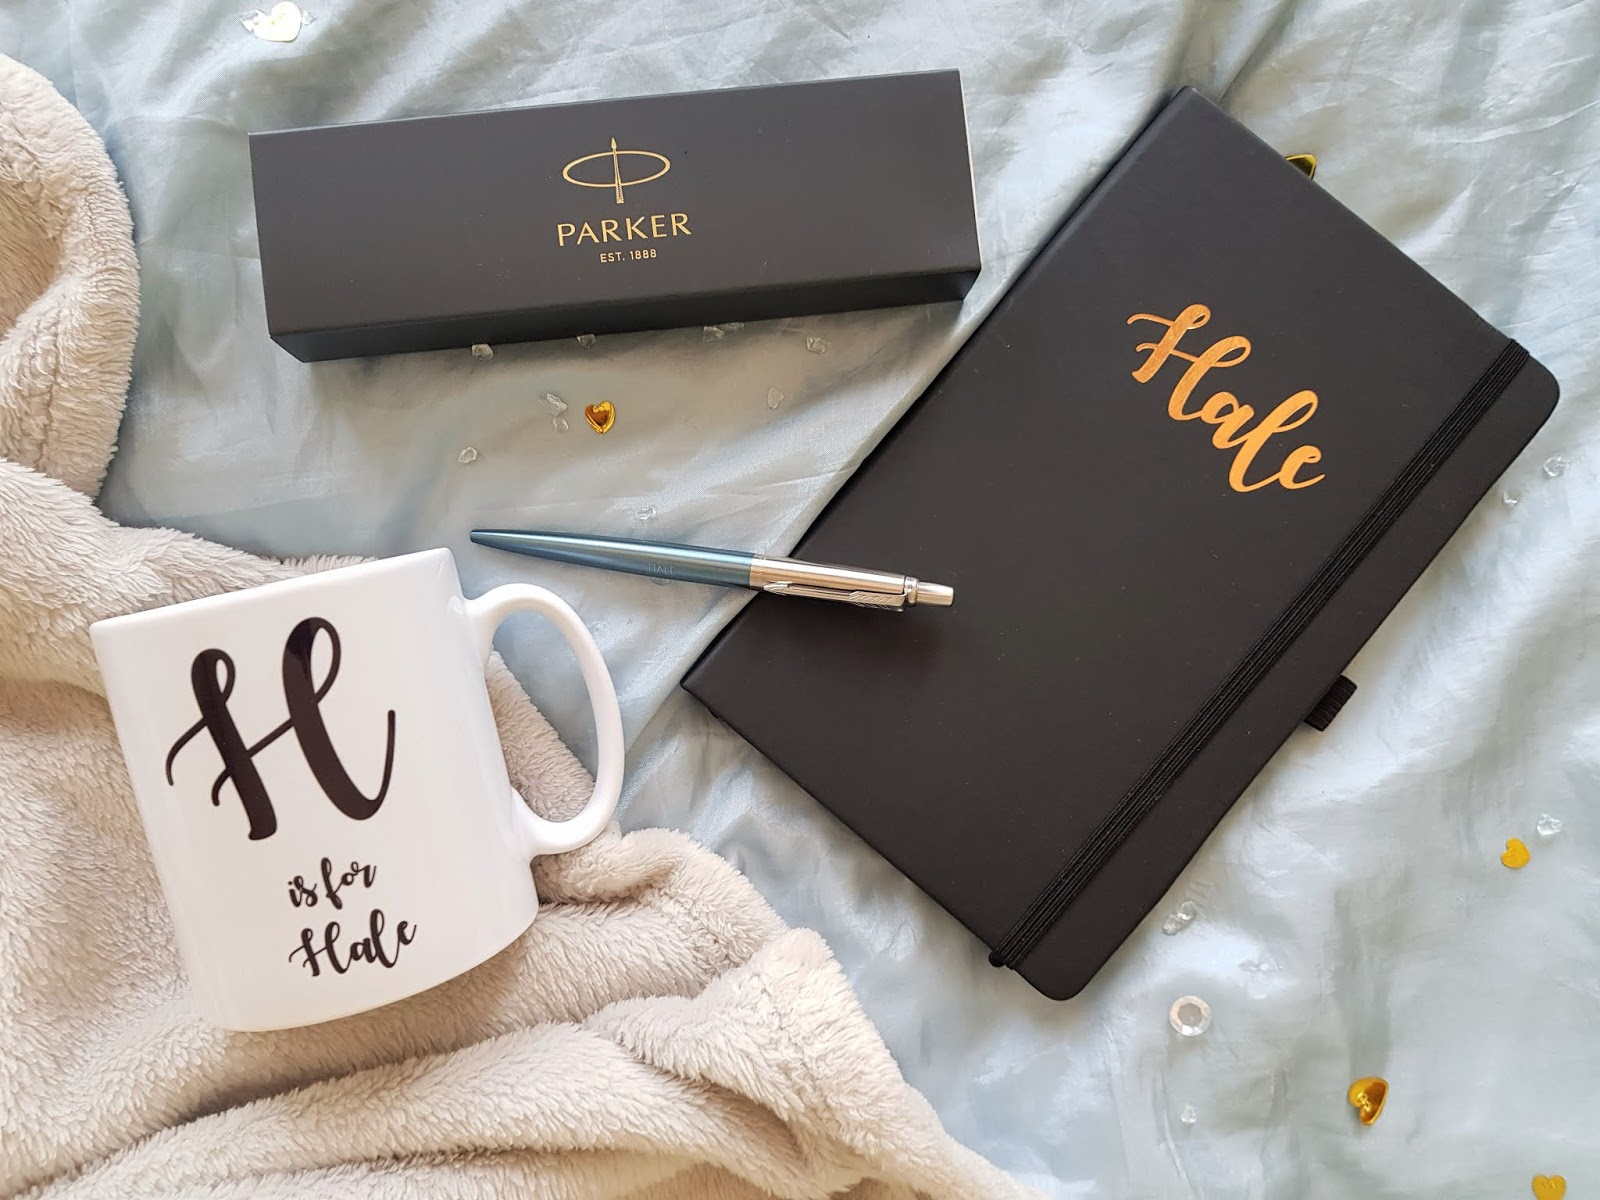 Ryman's personalised notebook, mug, and Parker jotter